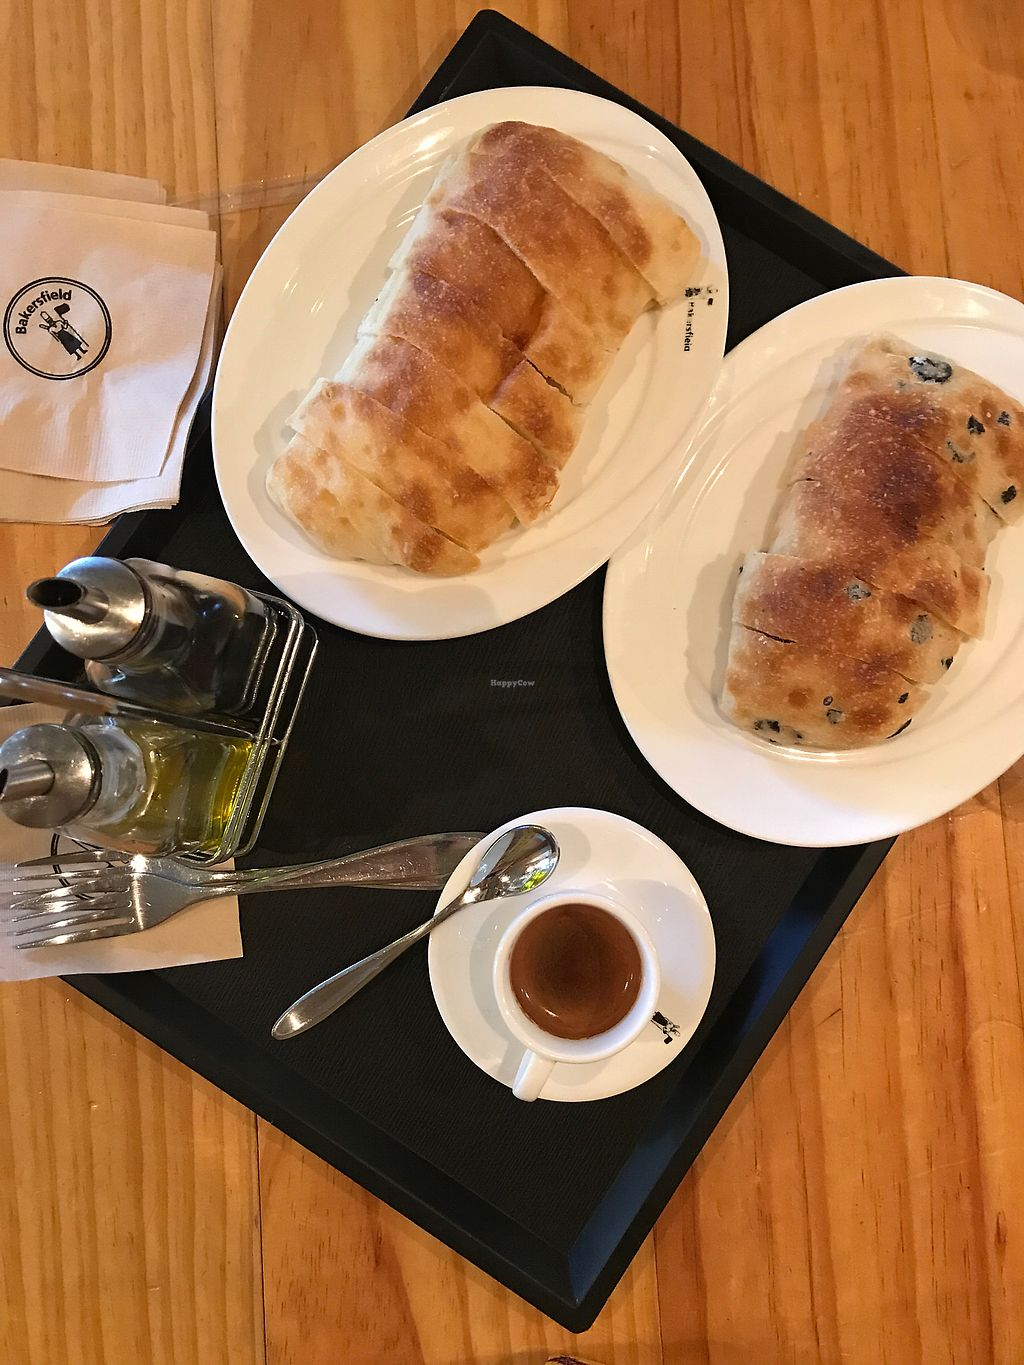 """Photo of Bakersfield - Gangnam - 베이커스필드 강남  by <a href=""""/members/profile/TheVeganKoalaBear"""">TheVeganKoalaBear</a> <br/>bread <br/> August 29, 2017  - <a href='/contact/abuse/image/63141/298660'>Report</a>"""